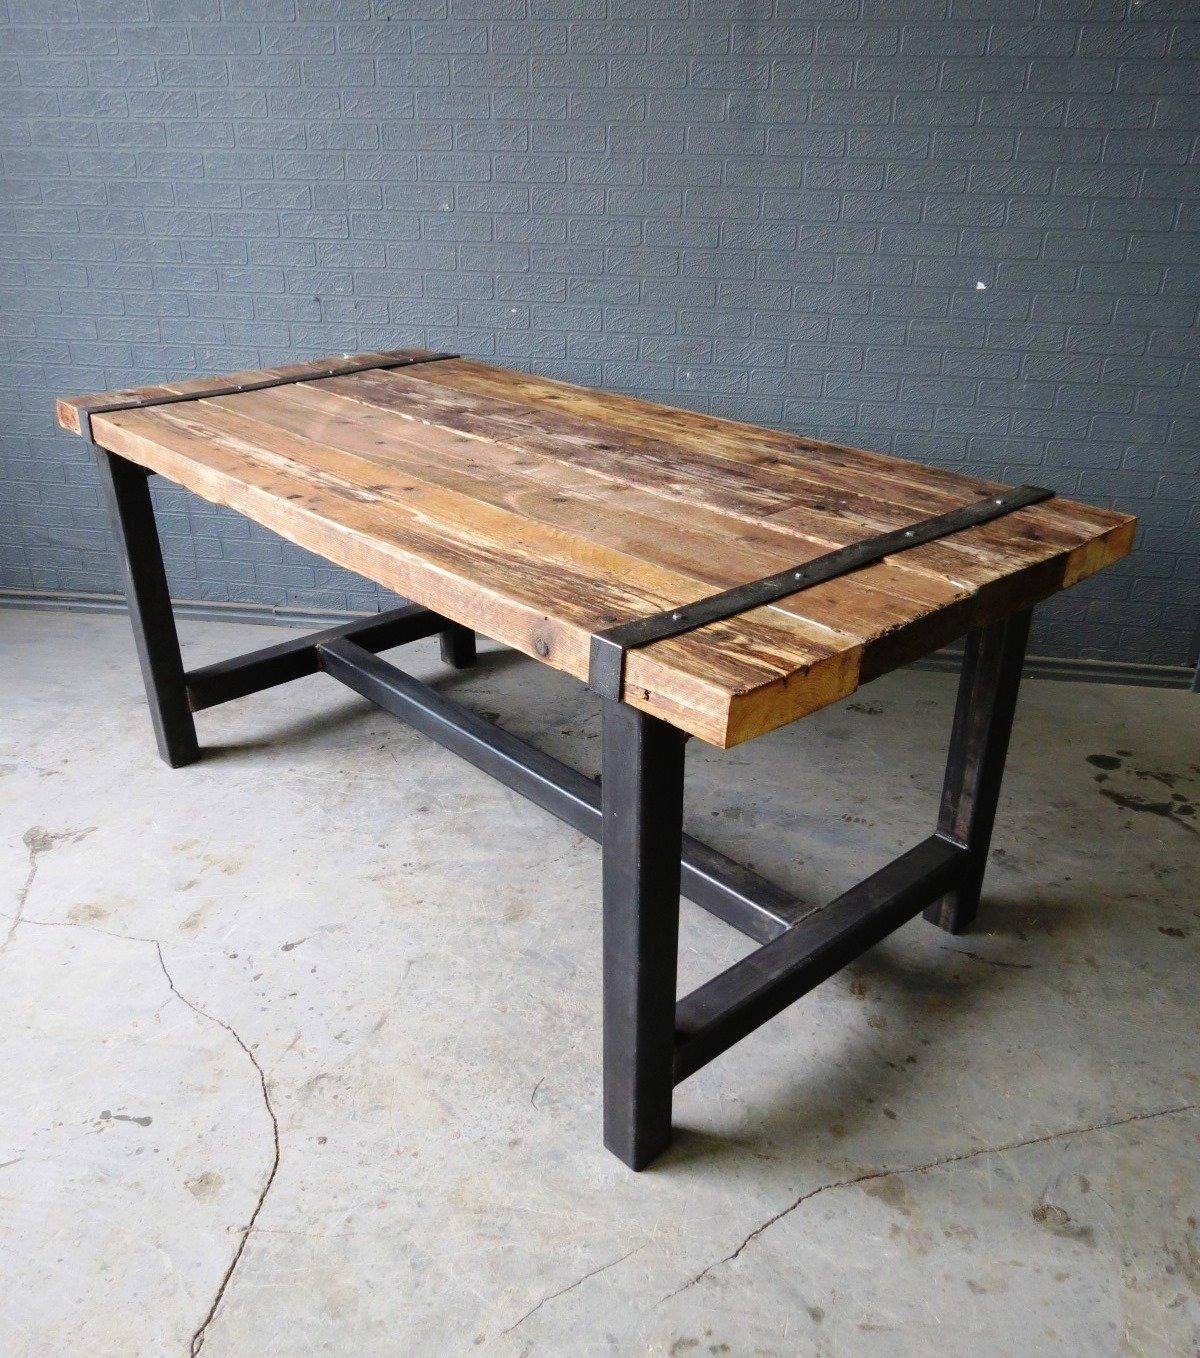 Industrial Chic Custom Medieval Reclaimed Timber Dining Table Steel FrameBar